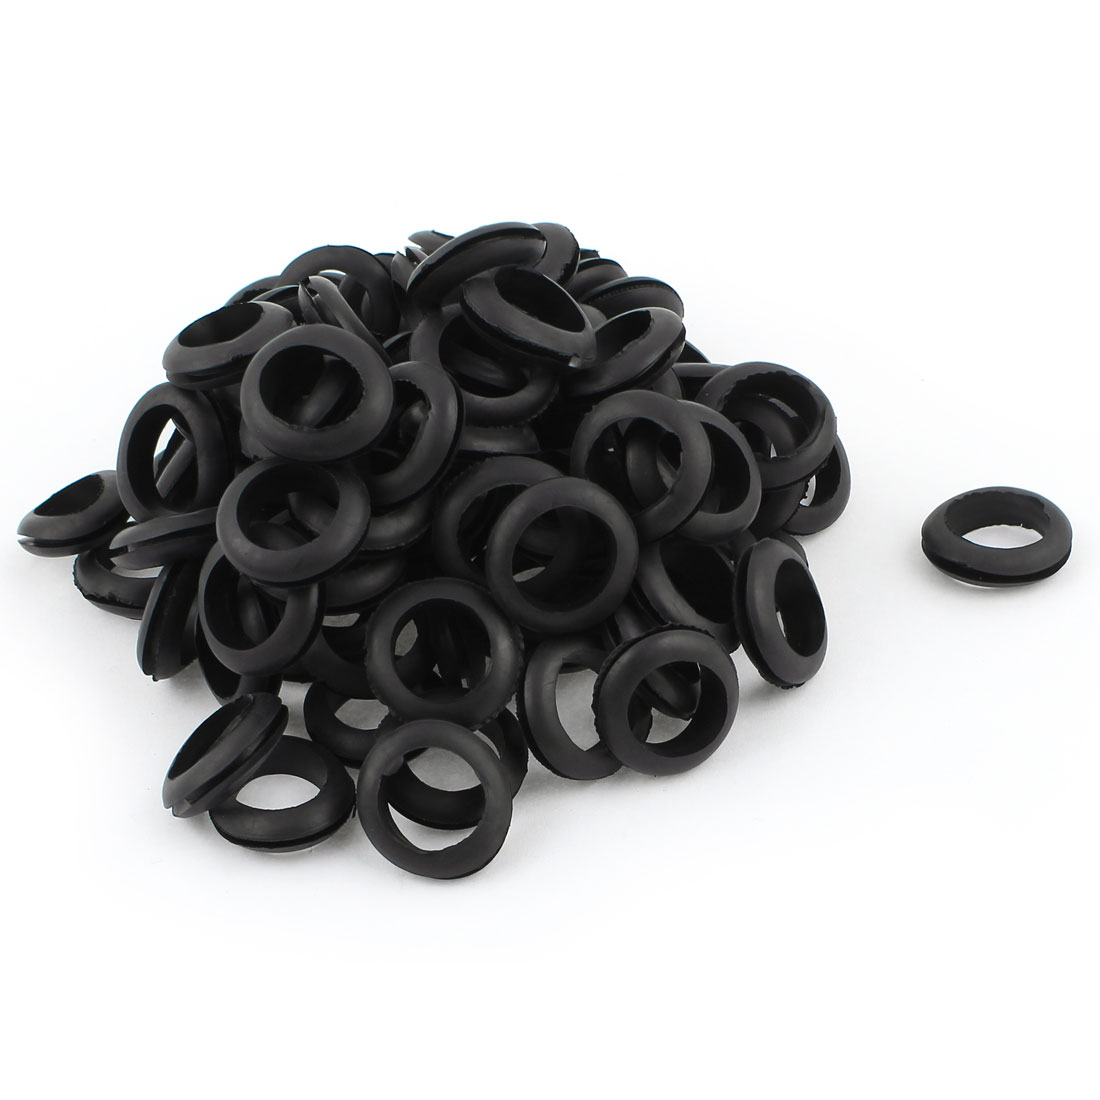 100 Pcs Black Rubber 18mm Open Hole Ring Dual Side Cable Wiring Grommet